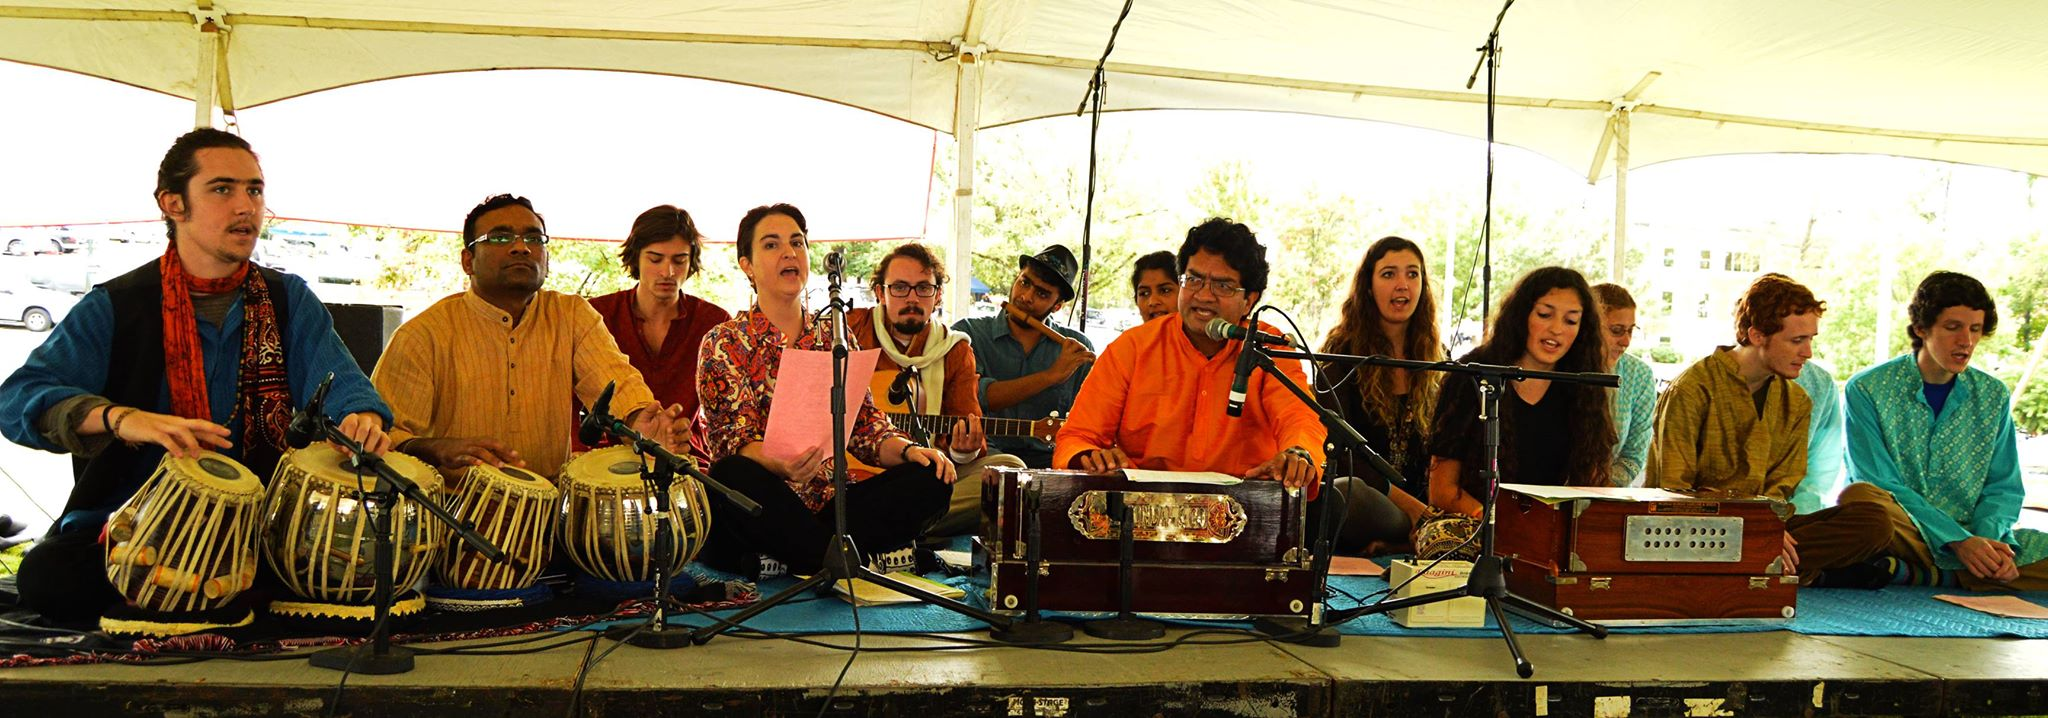 Auburn Indian Music Ensemble